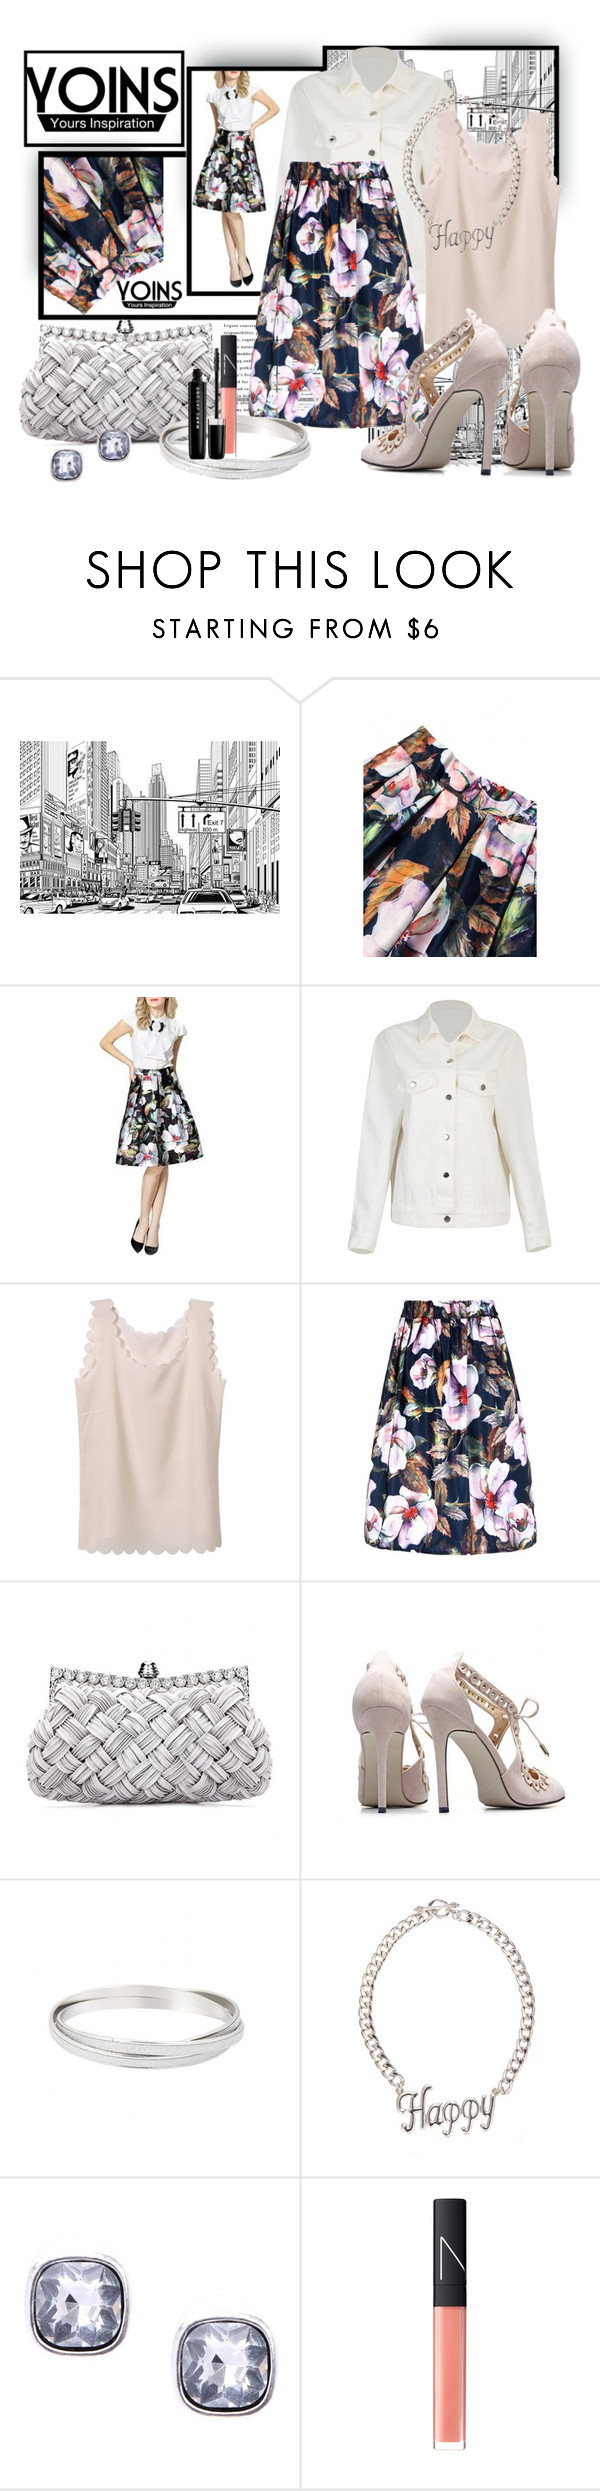 """""""Noblewoman"""" by tasha1973 ❤ liked on Polyvore featuring NARS Cosmetics and Marc Jacobs"""